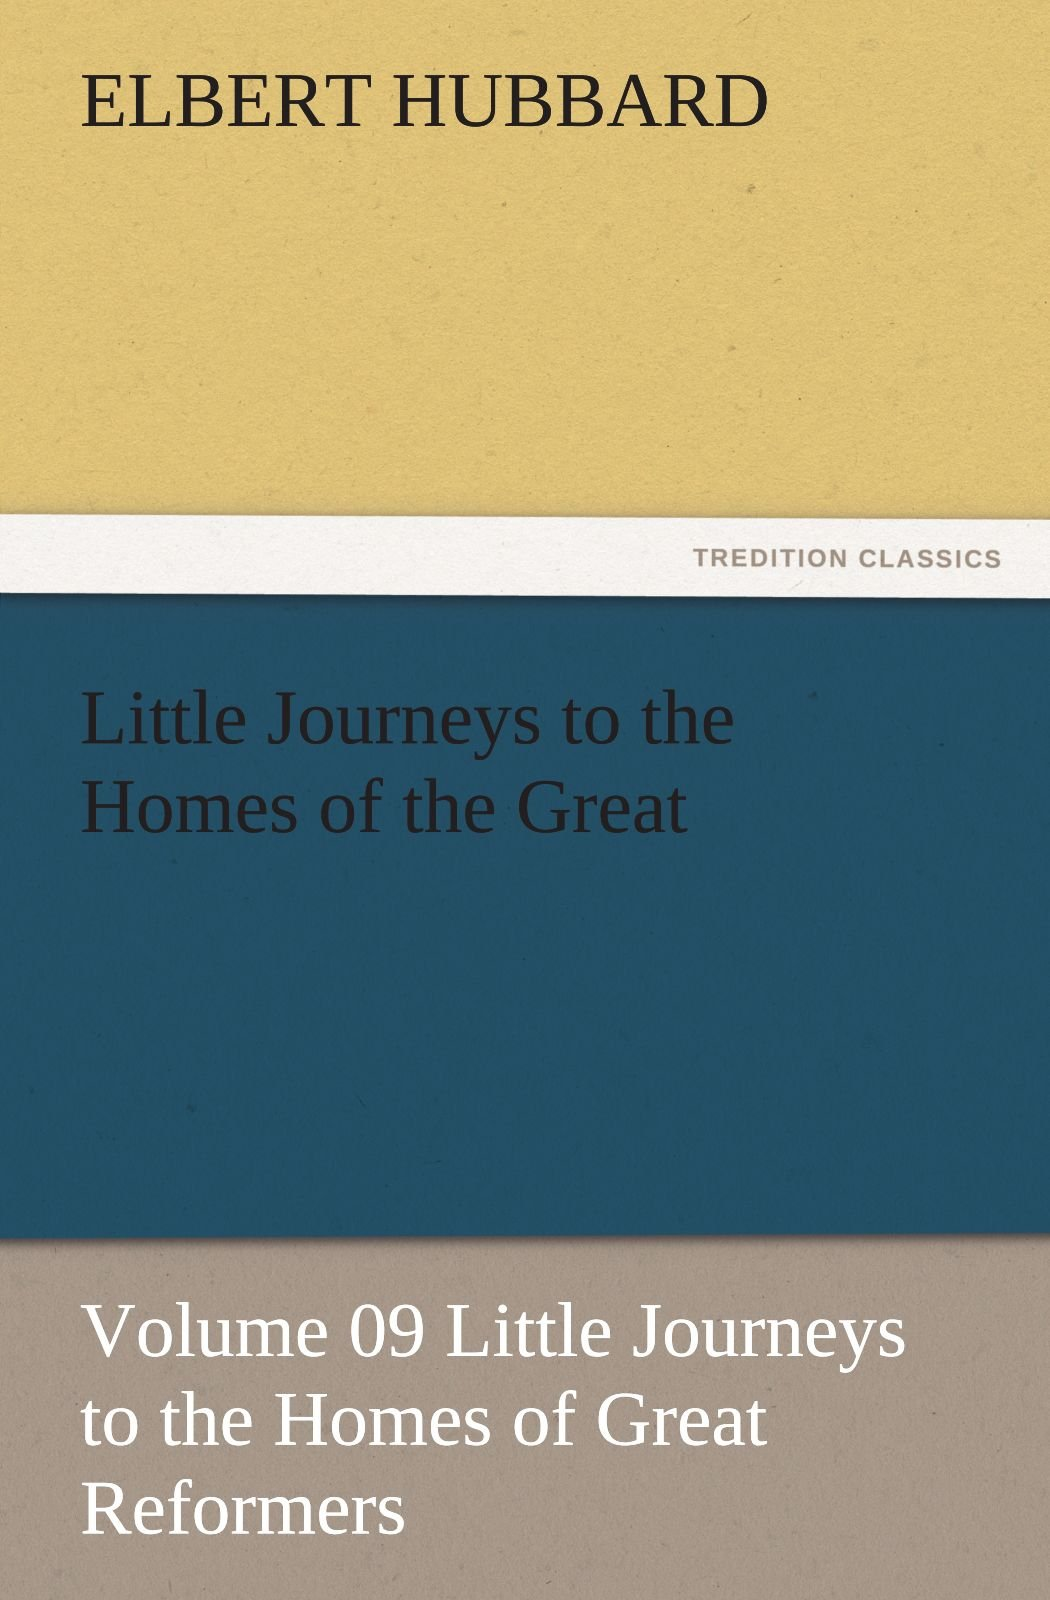 Download Little Journeys to the Homes of the Great - Volume 09 Little Journeys to the Homes of Great Reformers (TREDITION CLASSICS) PDF